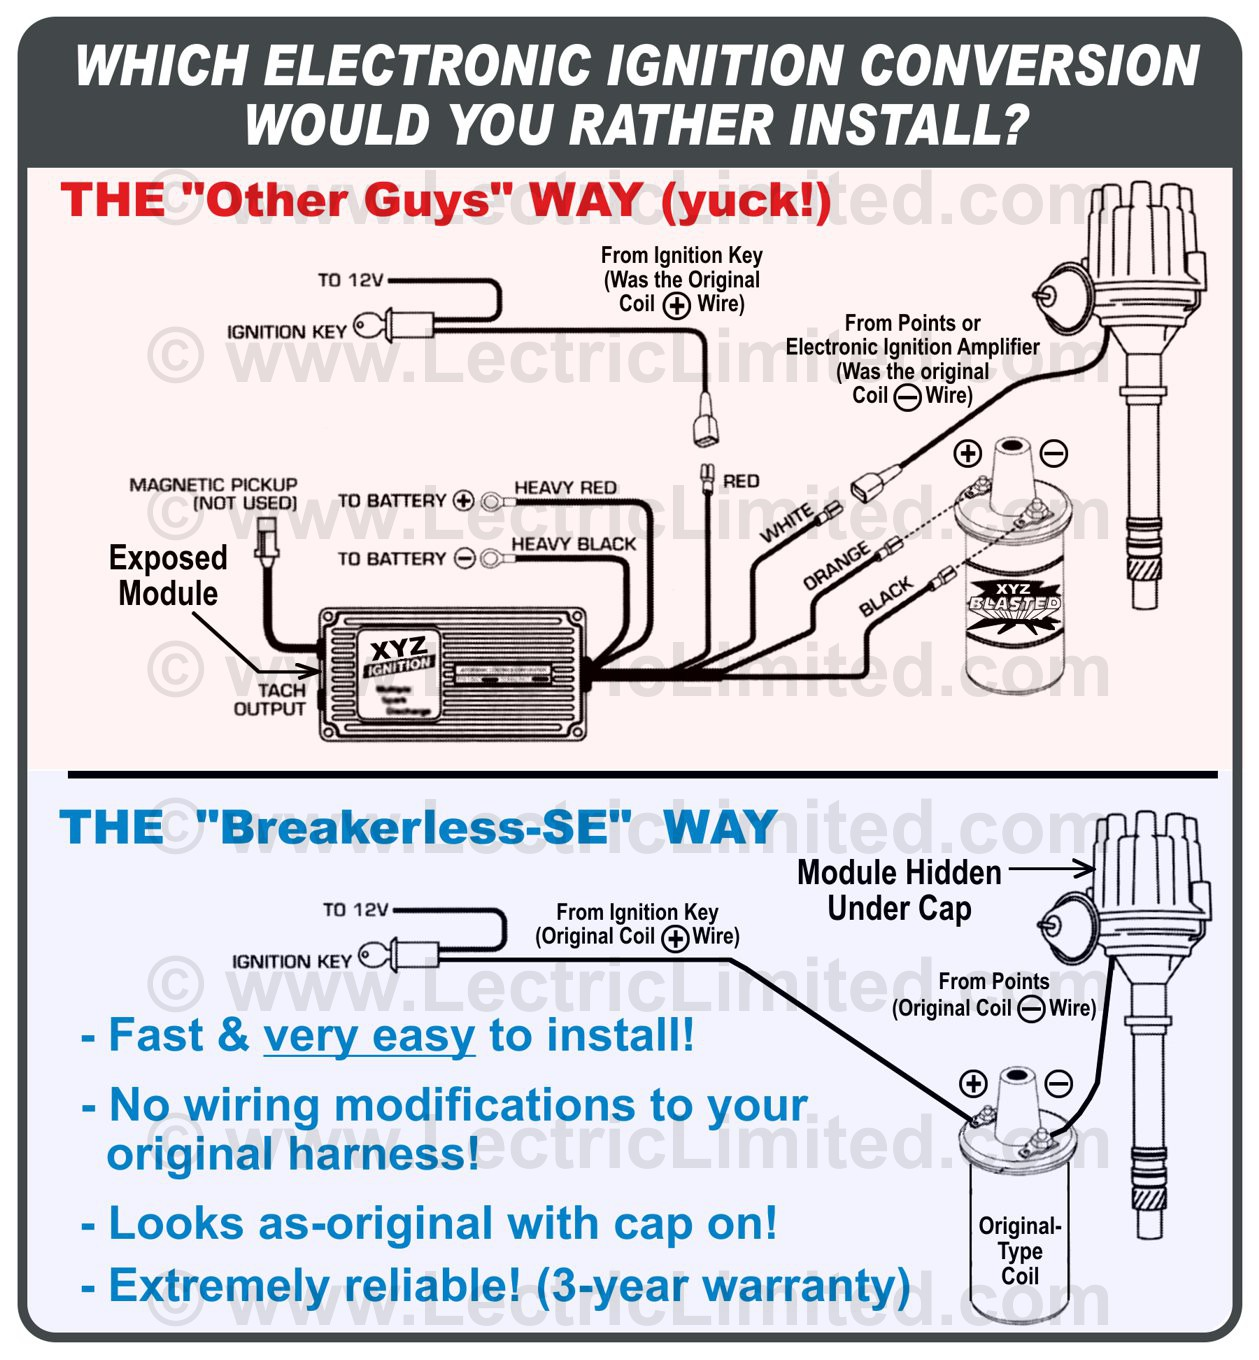 Breakerless-SE™ Electronic Ignition Conversion Kit (There is no comparison!)